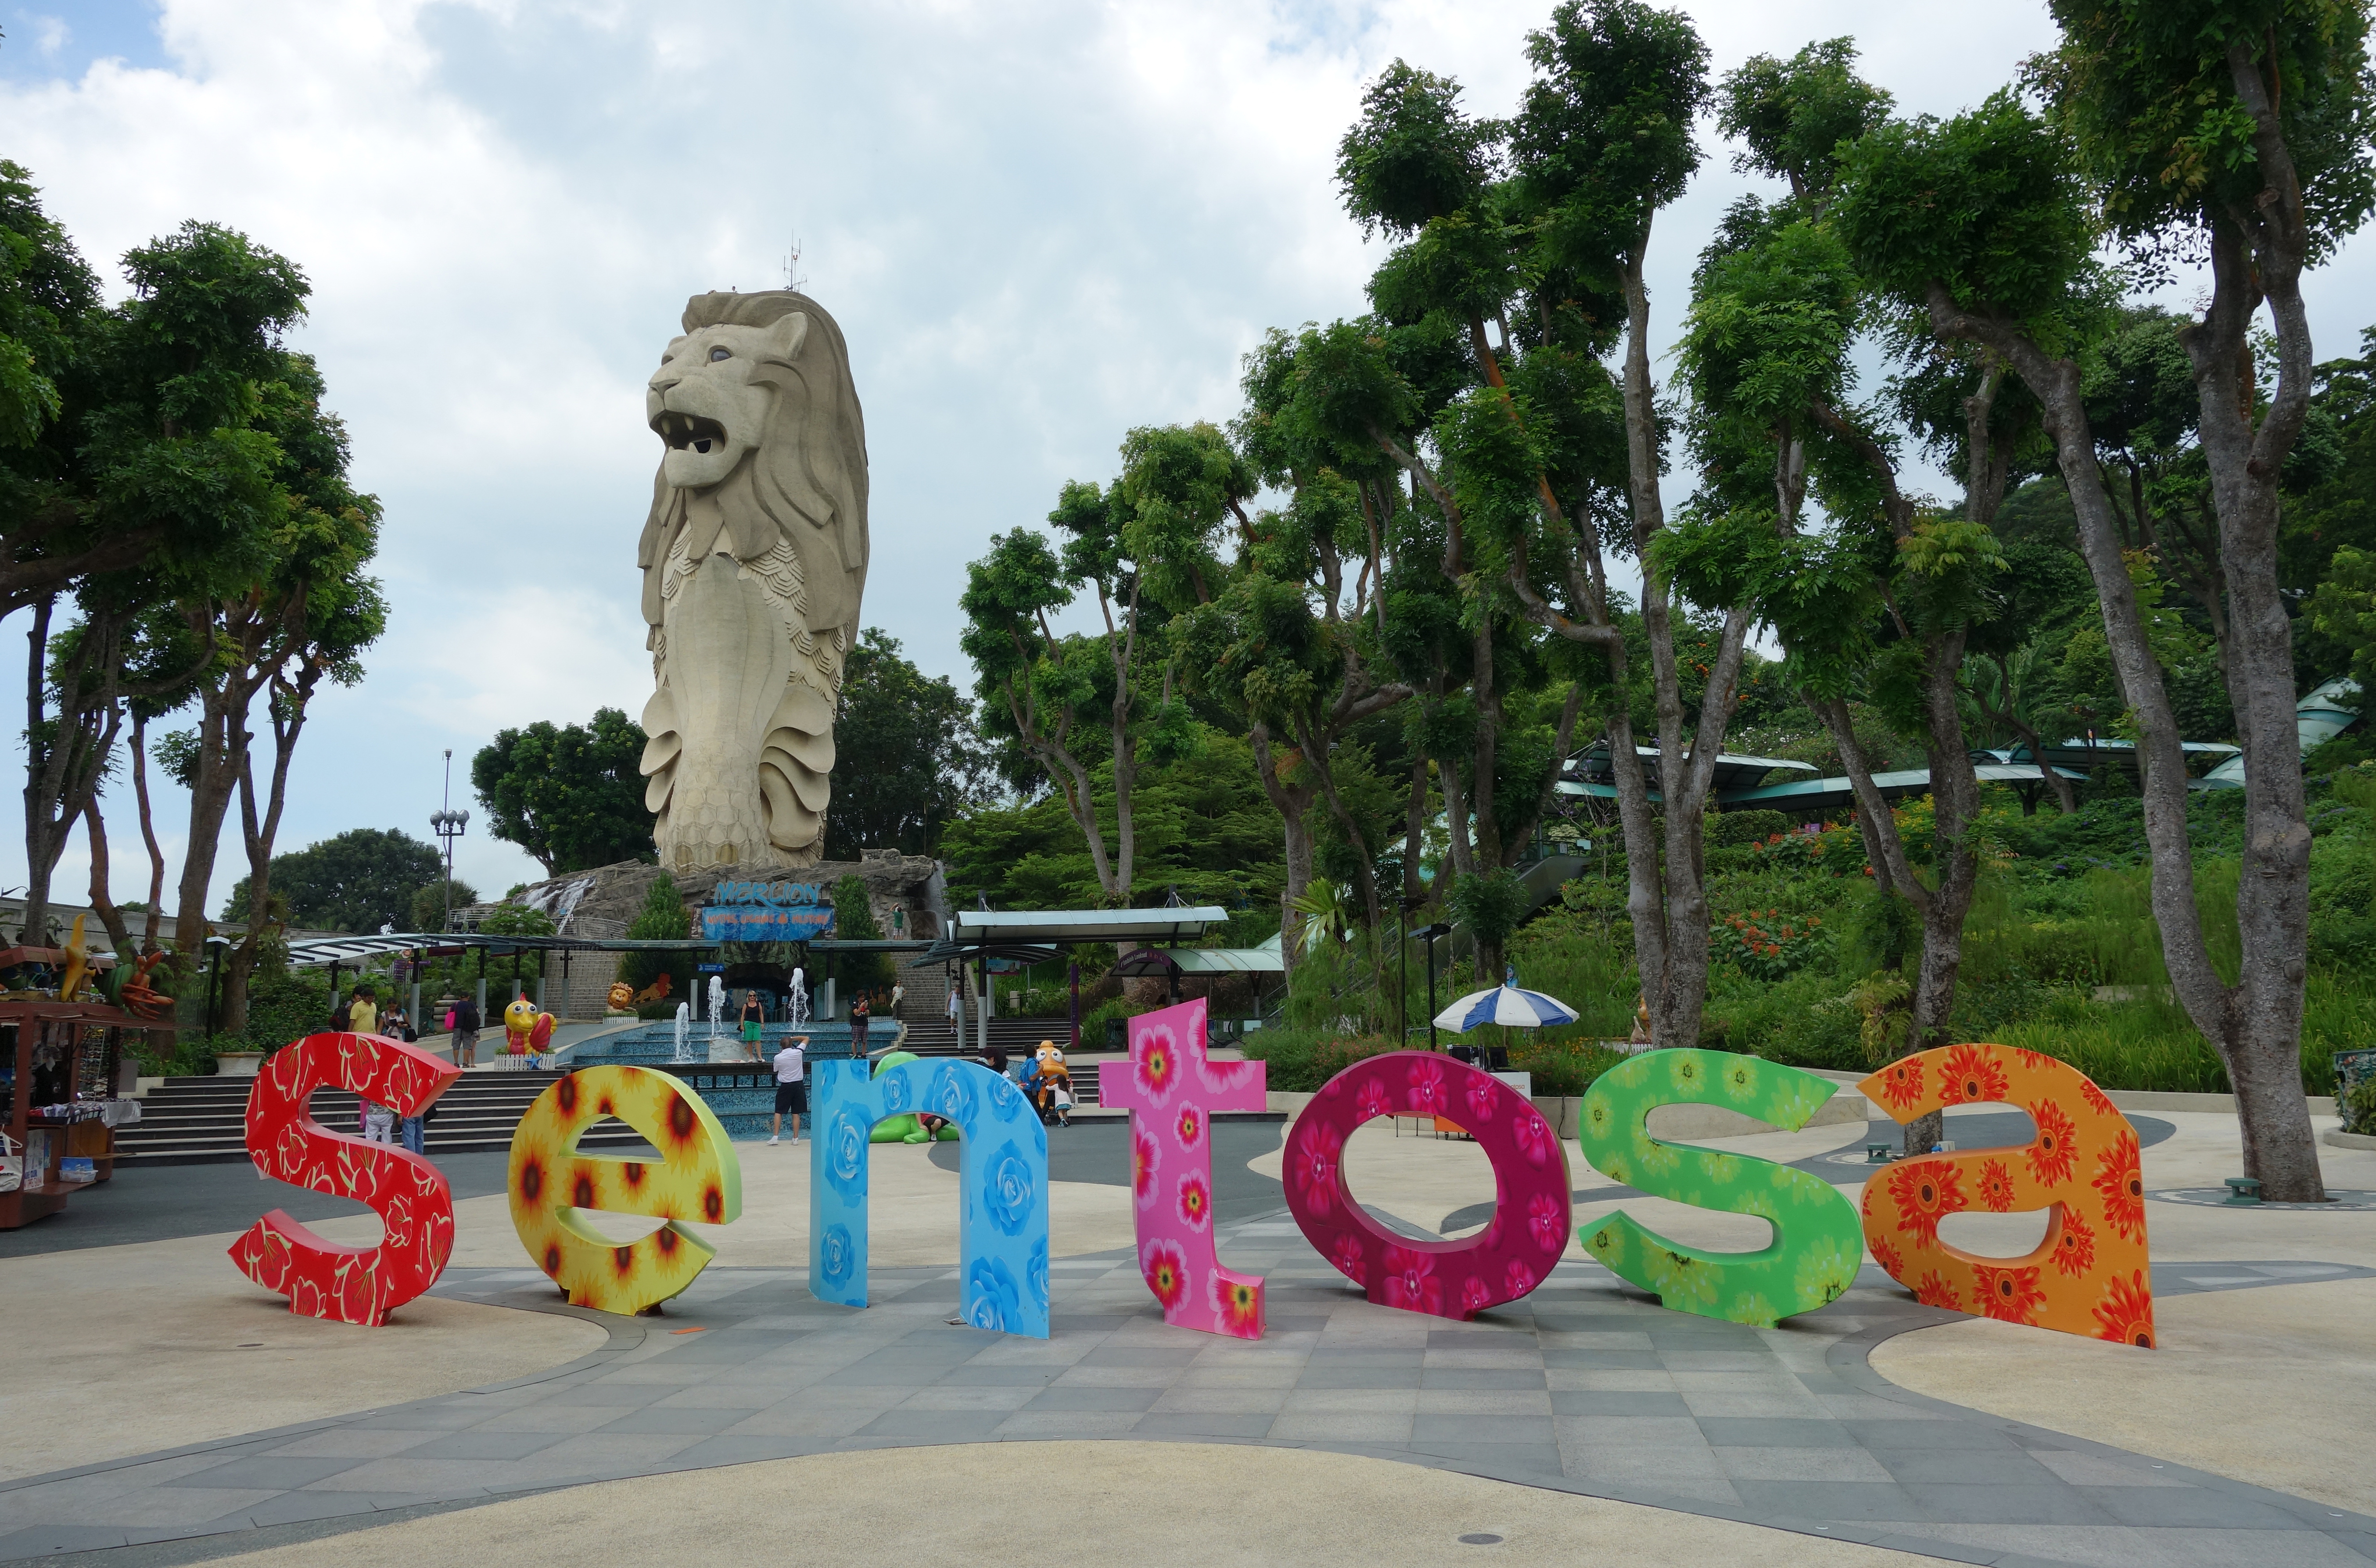 Sentosa Merlion Singapore Map,Map of Sentosa Merlion Singapore,Tourist Attractions in Singapore,Things to do in Singapore,Sentosa Merlion Singapore accommodation destinations attractions hotels map reviews photos pictures